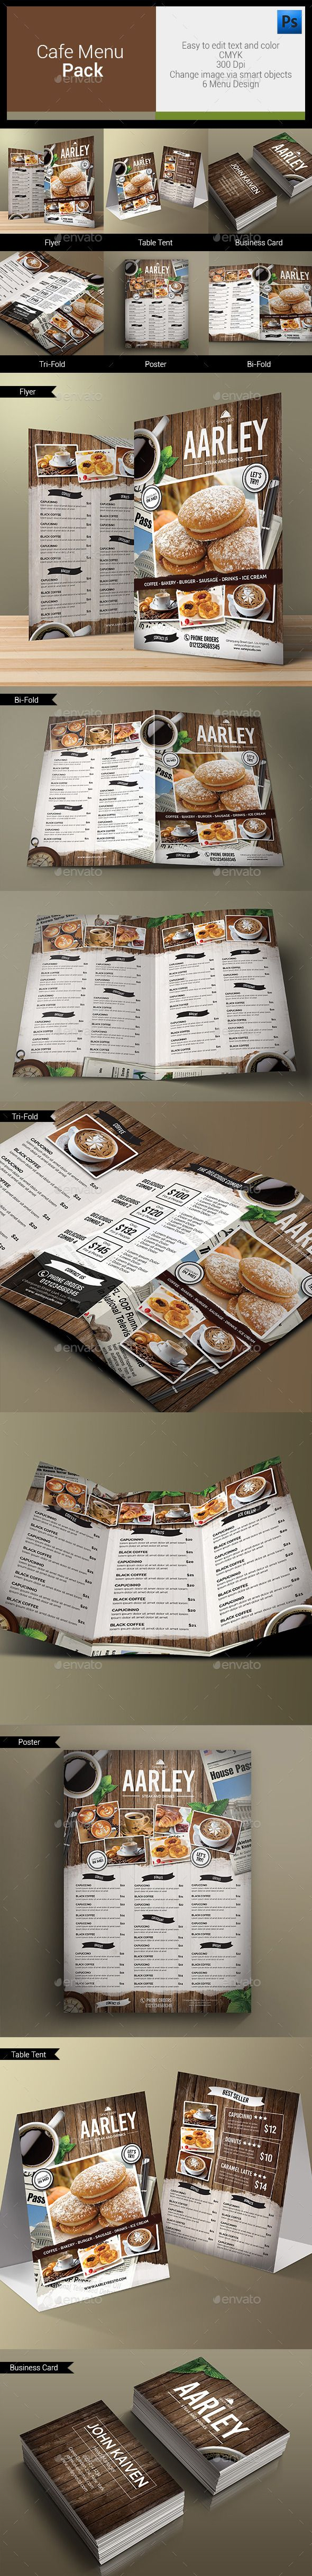 Cafe Menu Pack Template #design Download: http://graphicriver.net/item/cafe-menu-pack/12319050?ref=ksioks